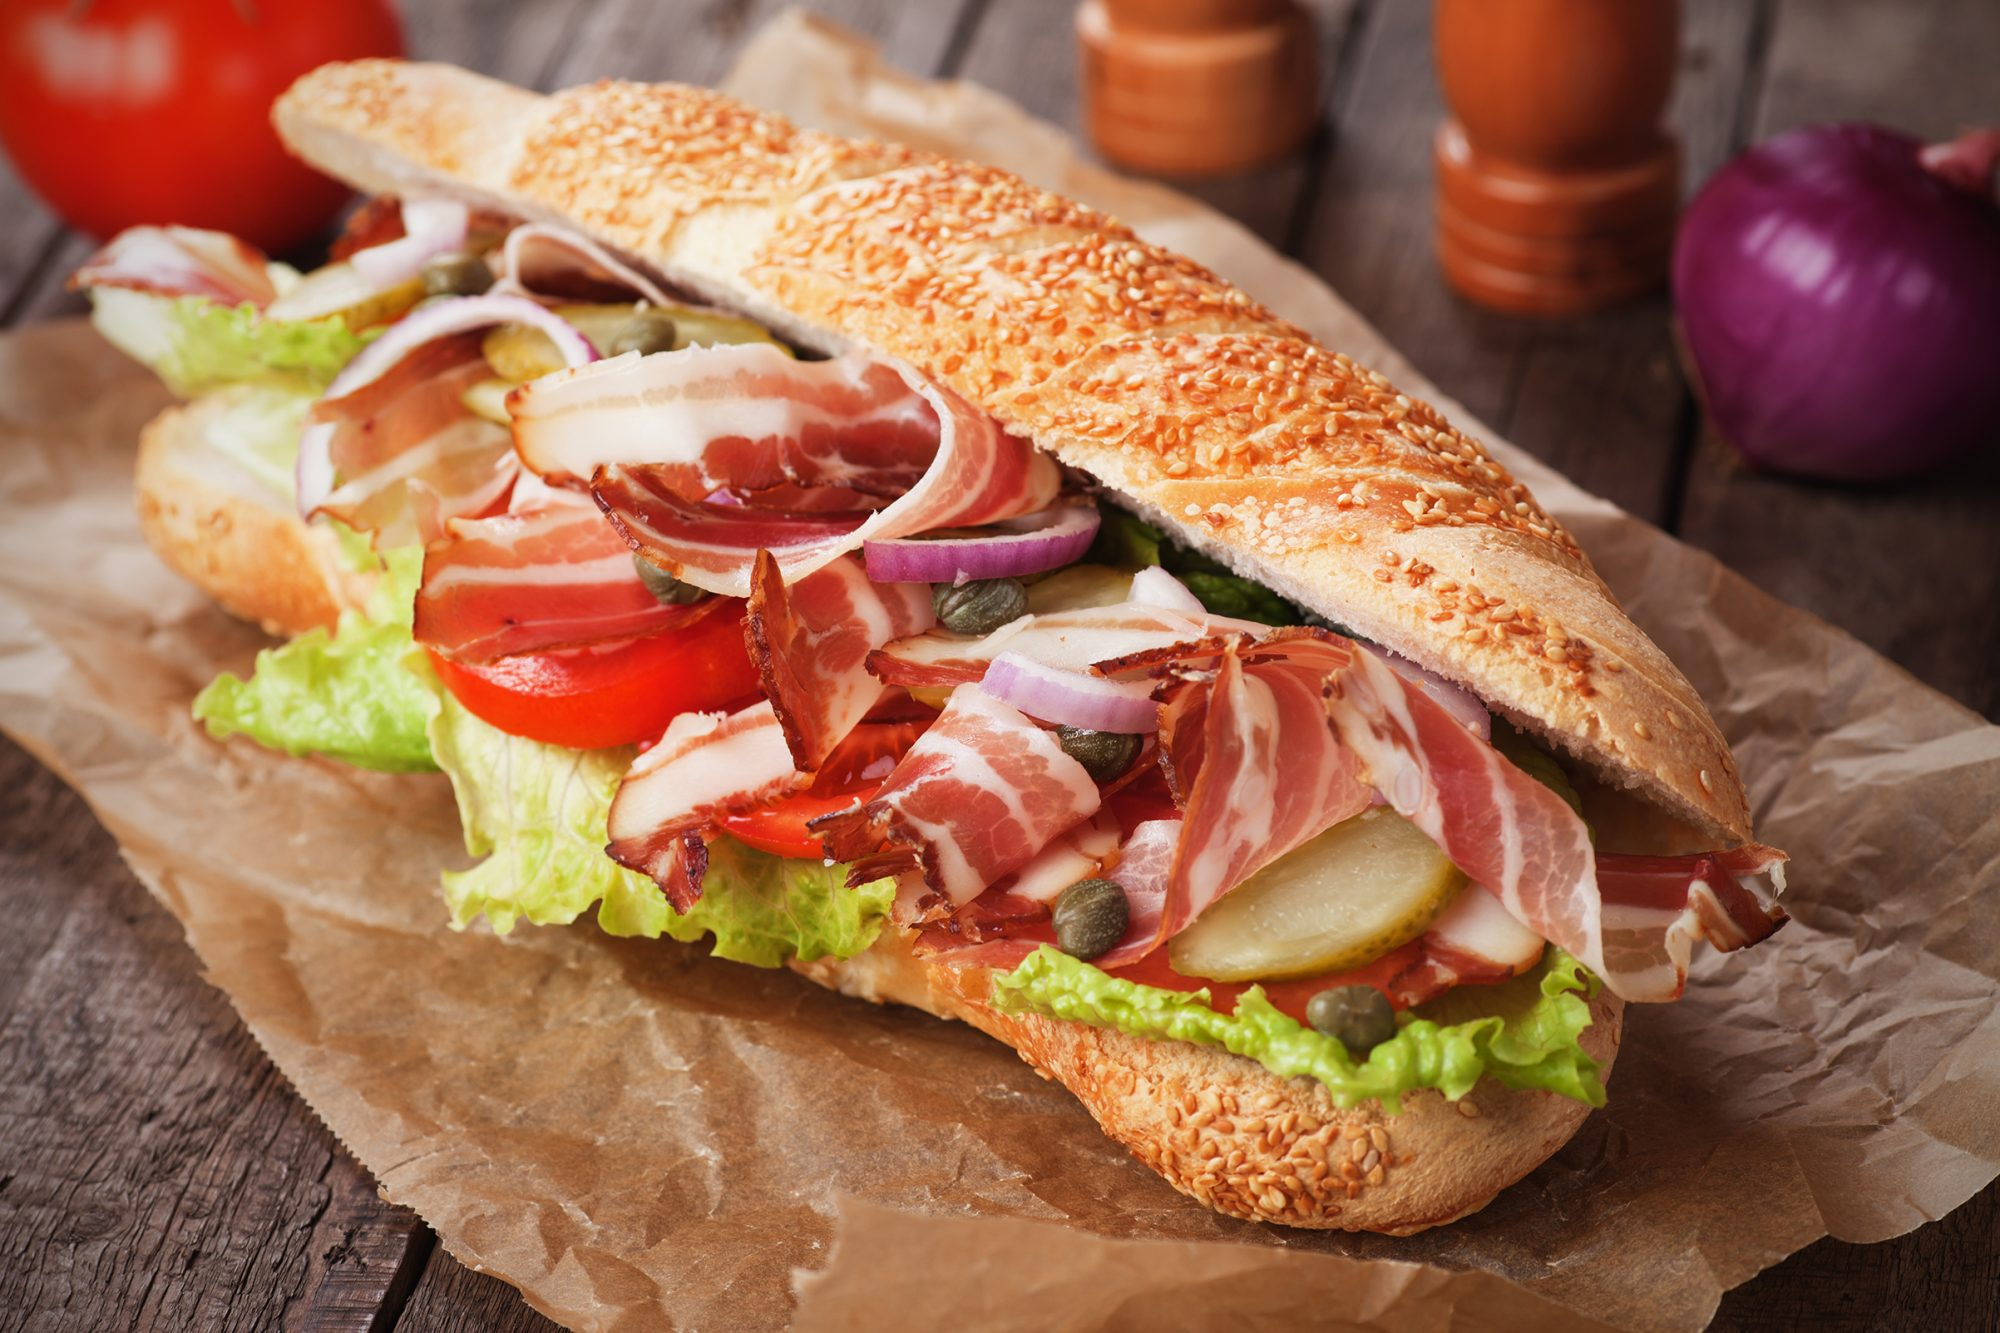 Subway Is Giving Out Free Subs Today for National Sandwich Day. Here's How to Get One